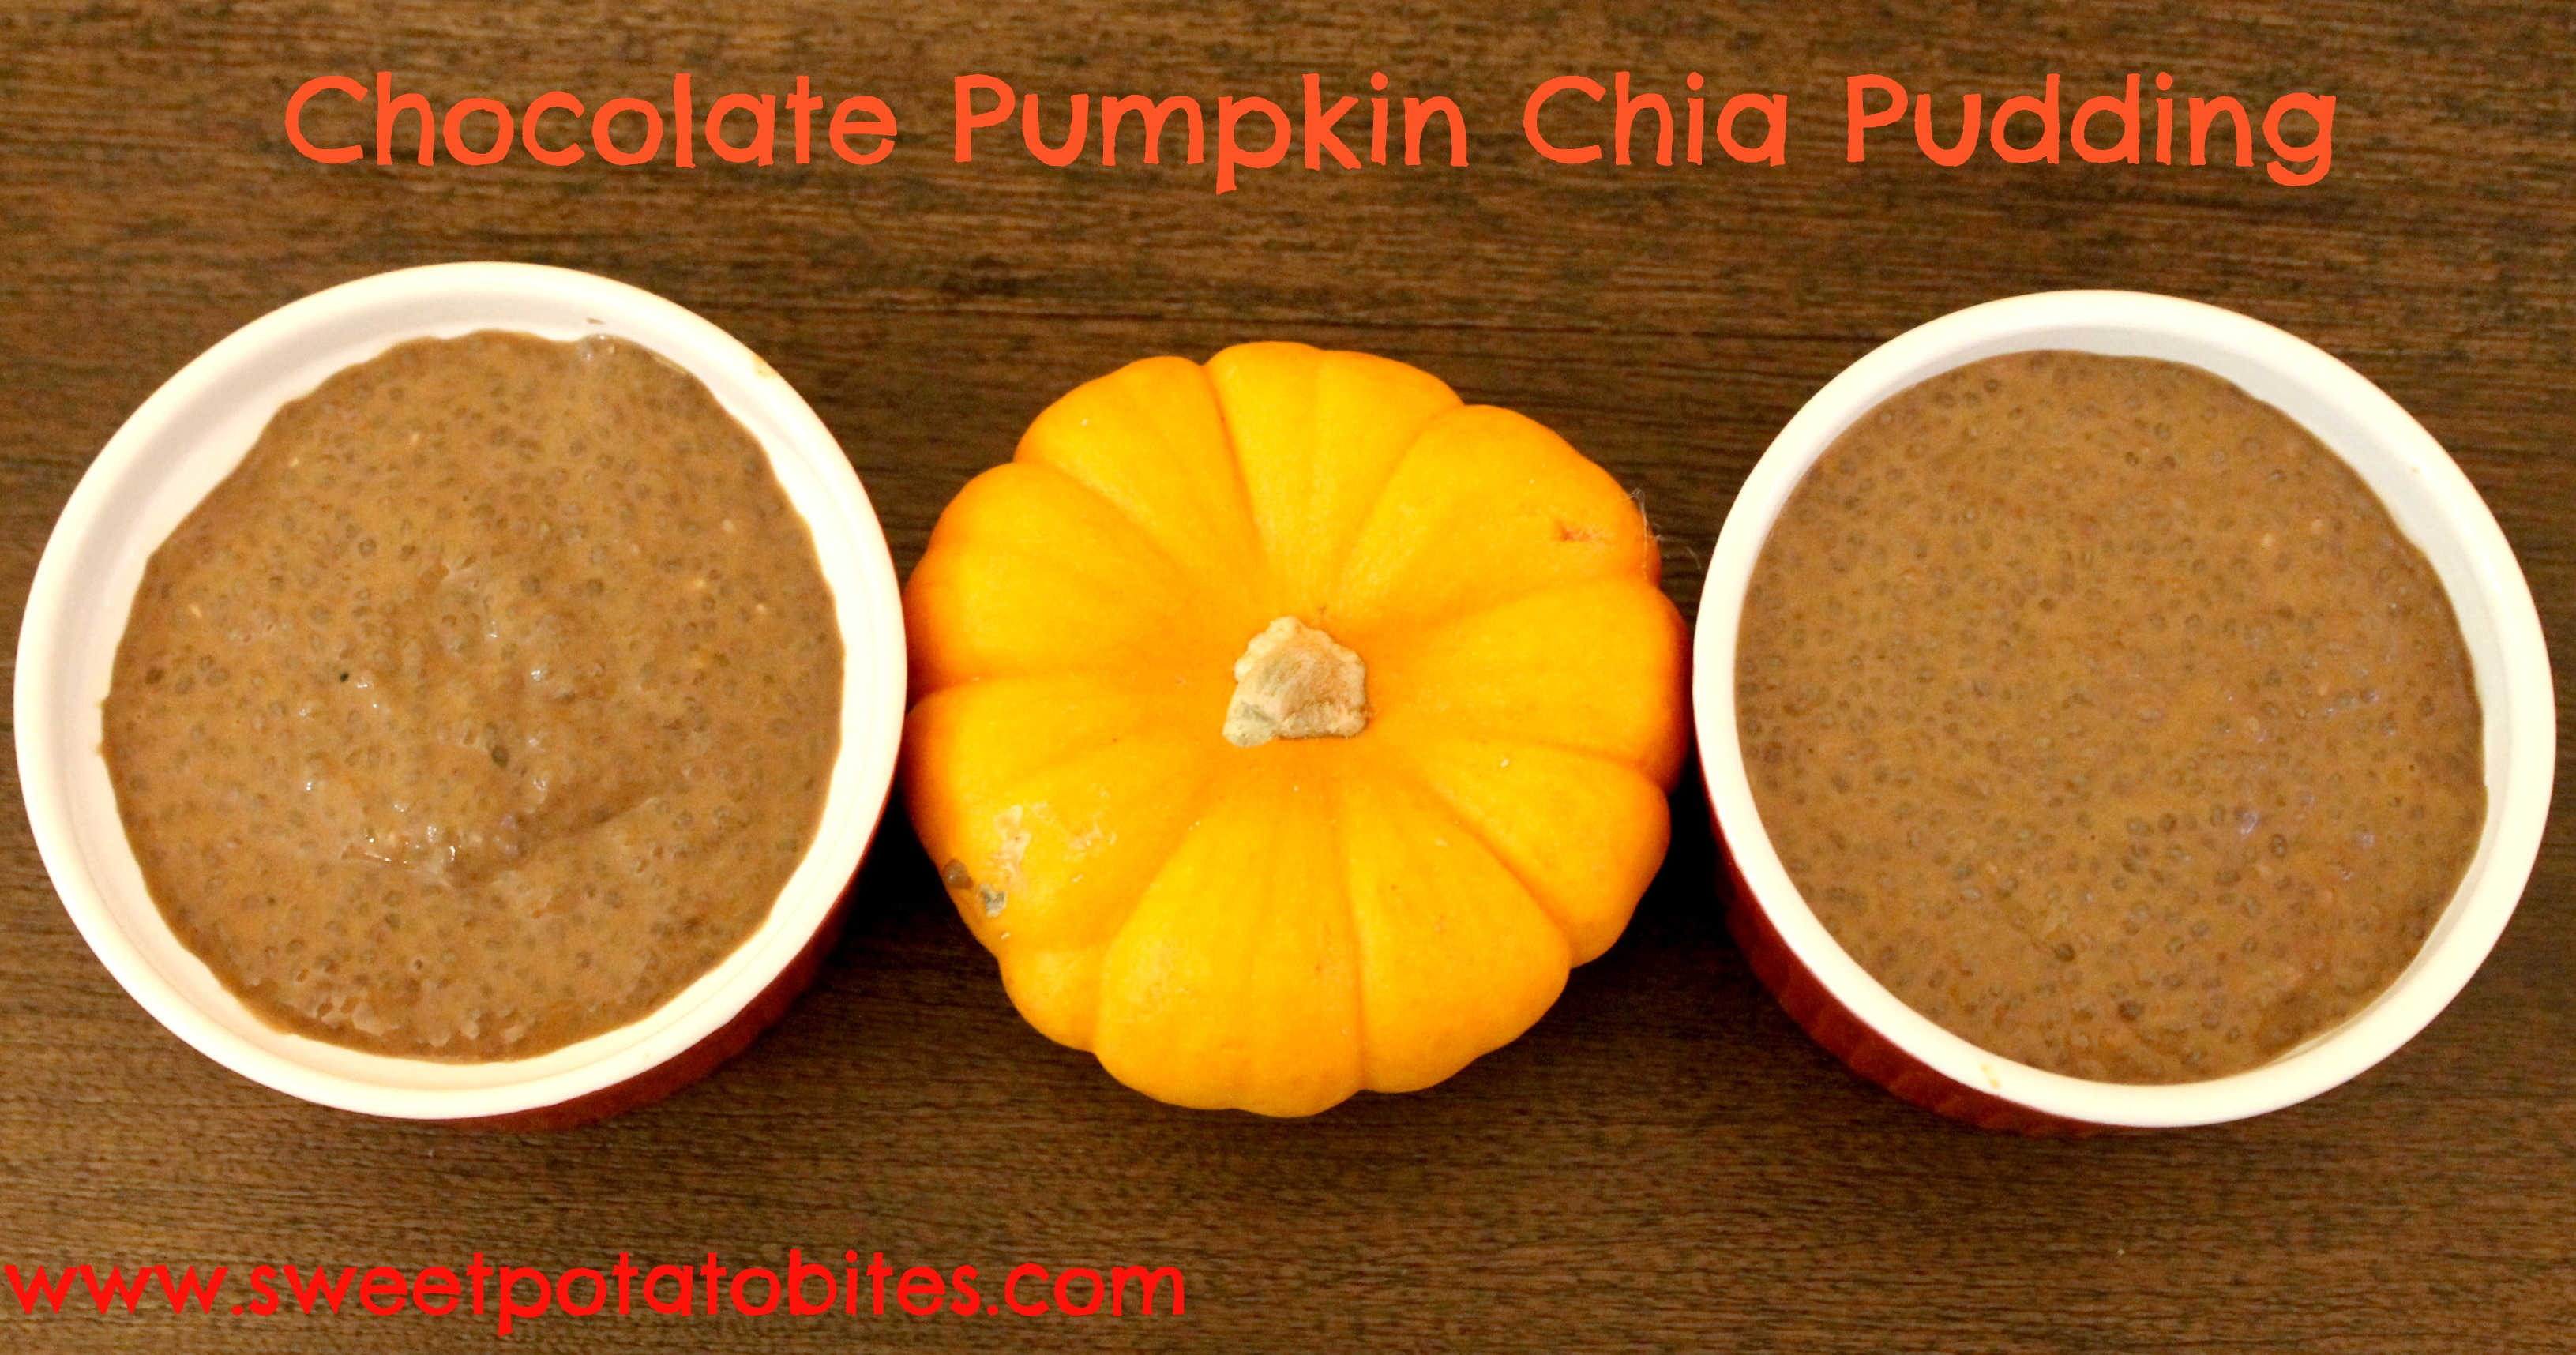 Chocolate Pumpkin Chia Pudding pin